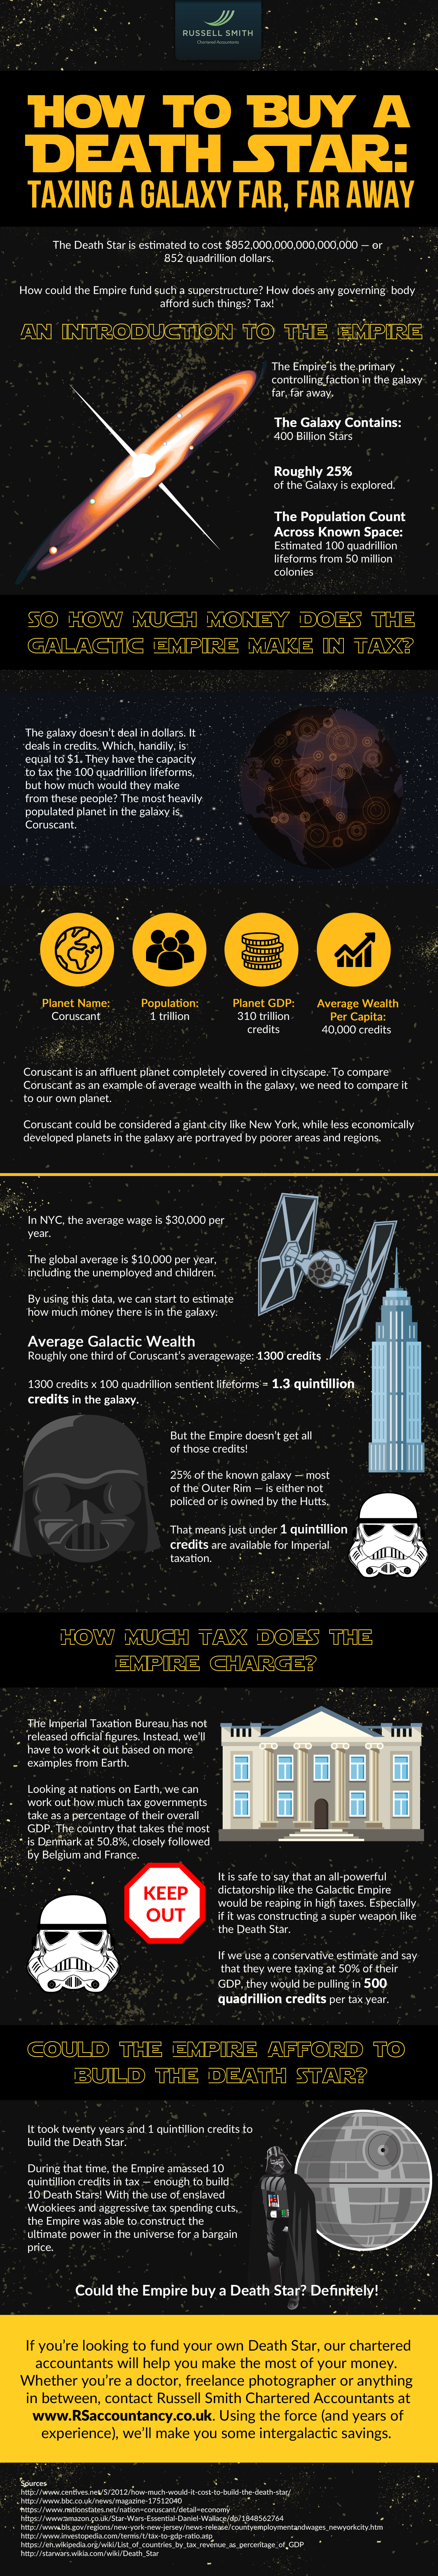 how-to-buy-a-death-star-taxing-a-galaxy-far-far-away-infographic